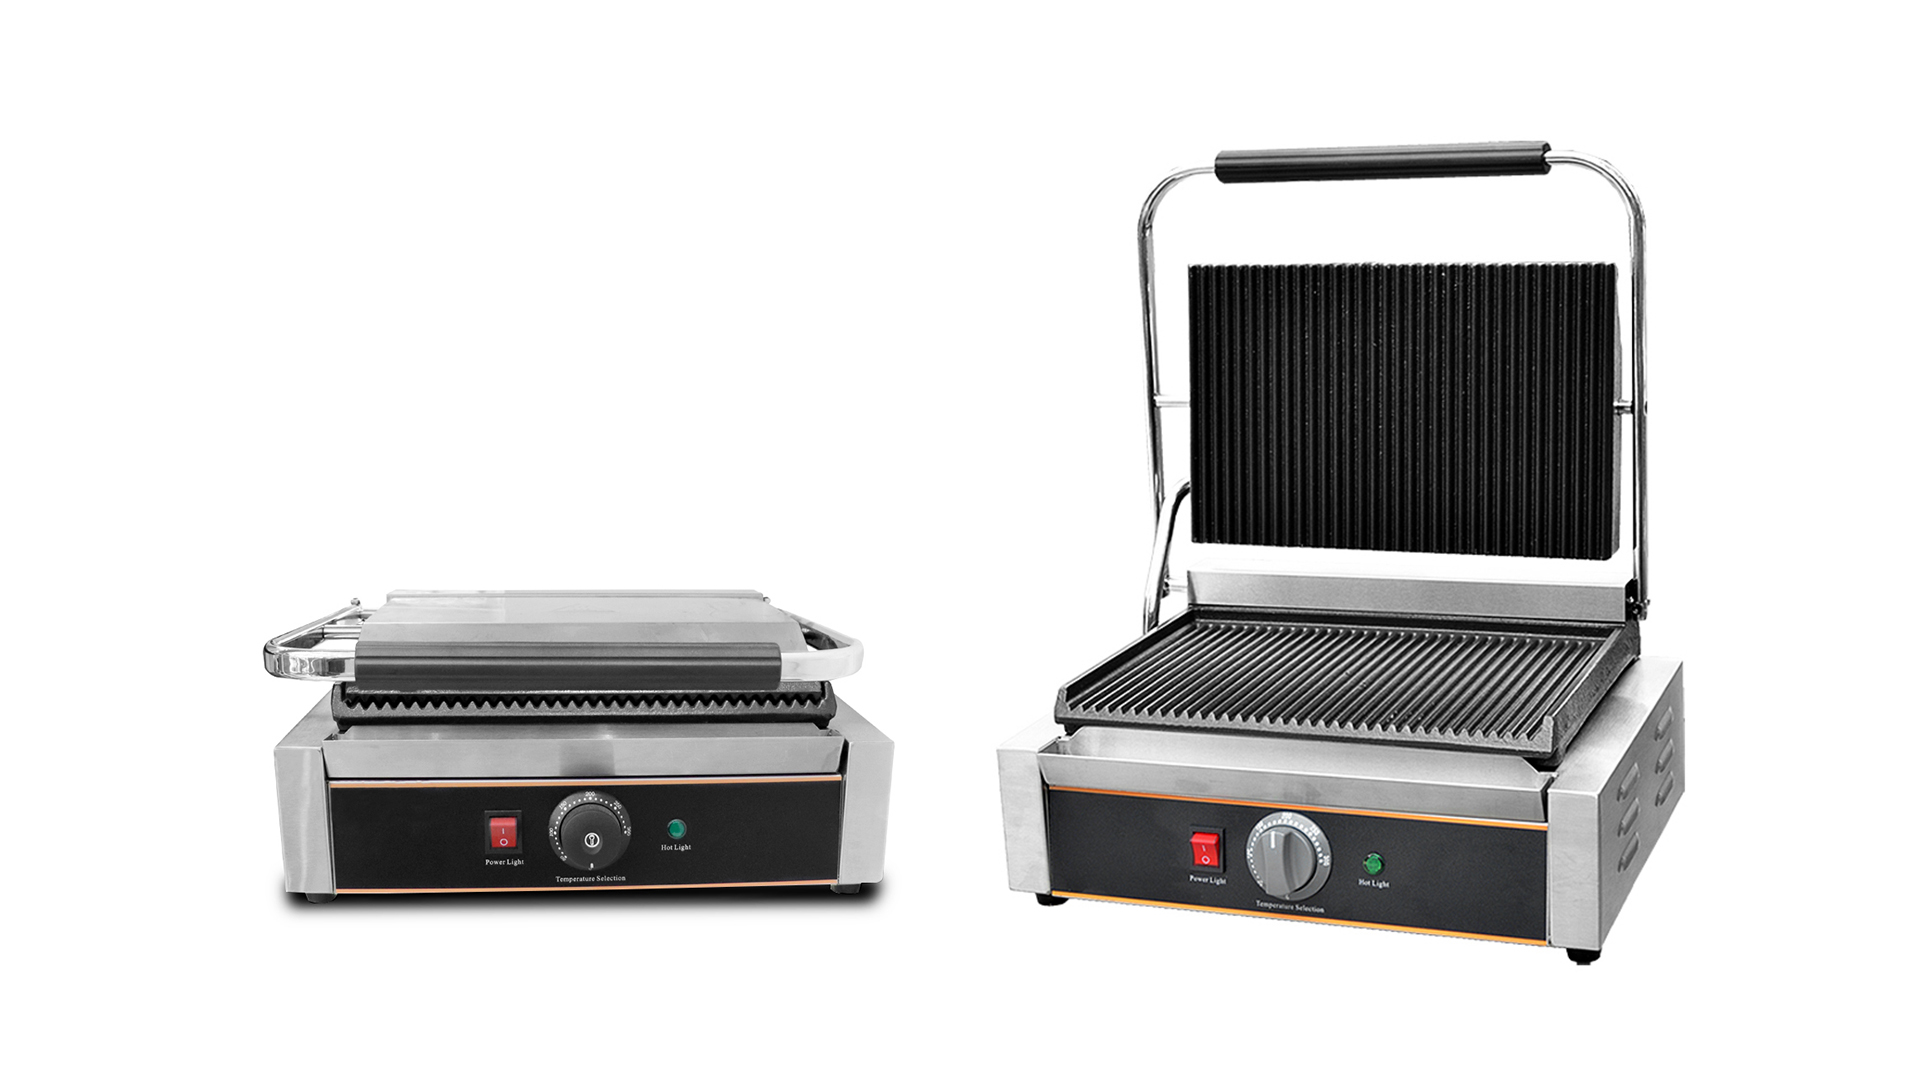 Stainless steel sandwich maker griddle gril electric contact grill